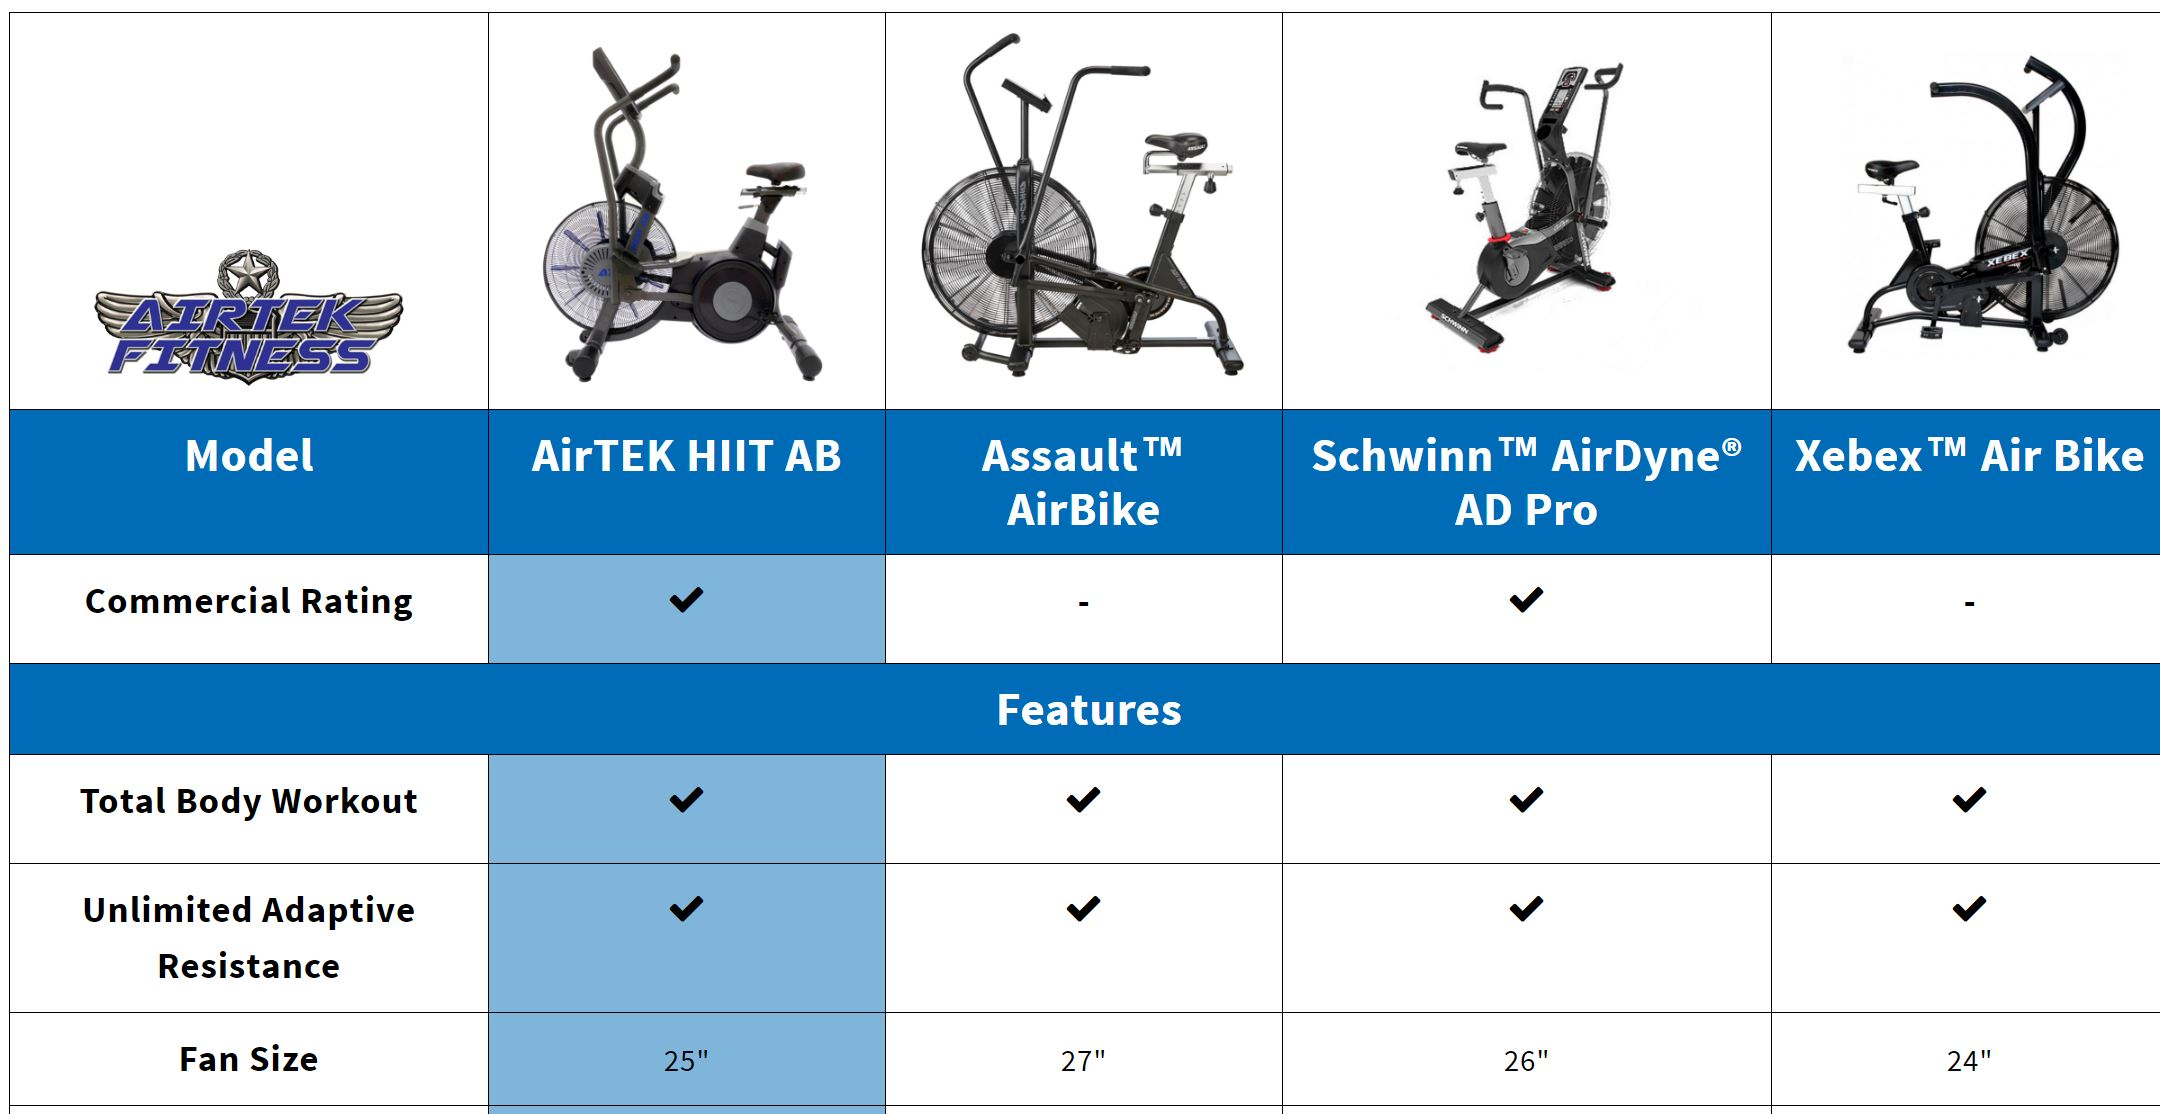 Compare-AirTEK-HIIT-AirBike-Assault-AirBike-Elite-Schwinn-Airdyne-AD-Pro-Rogue-Echo-Bike